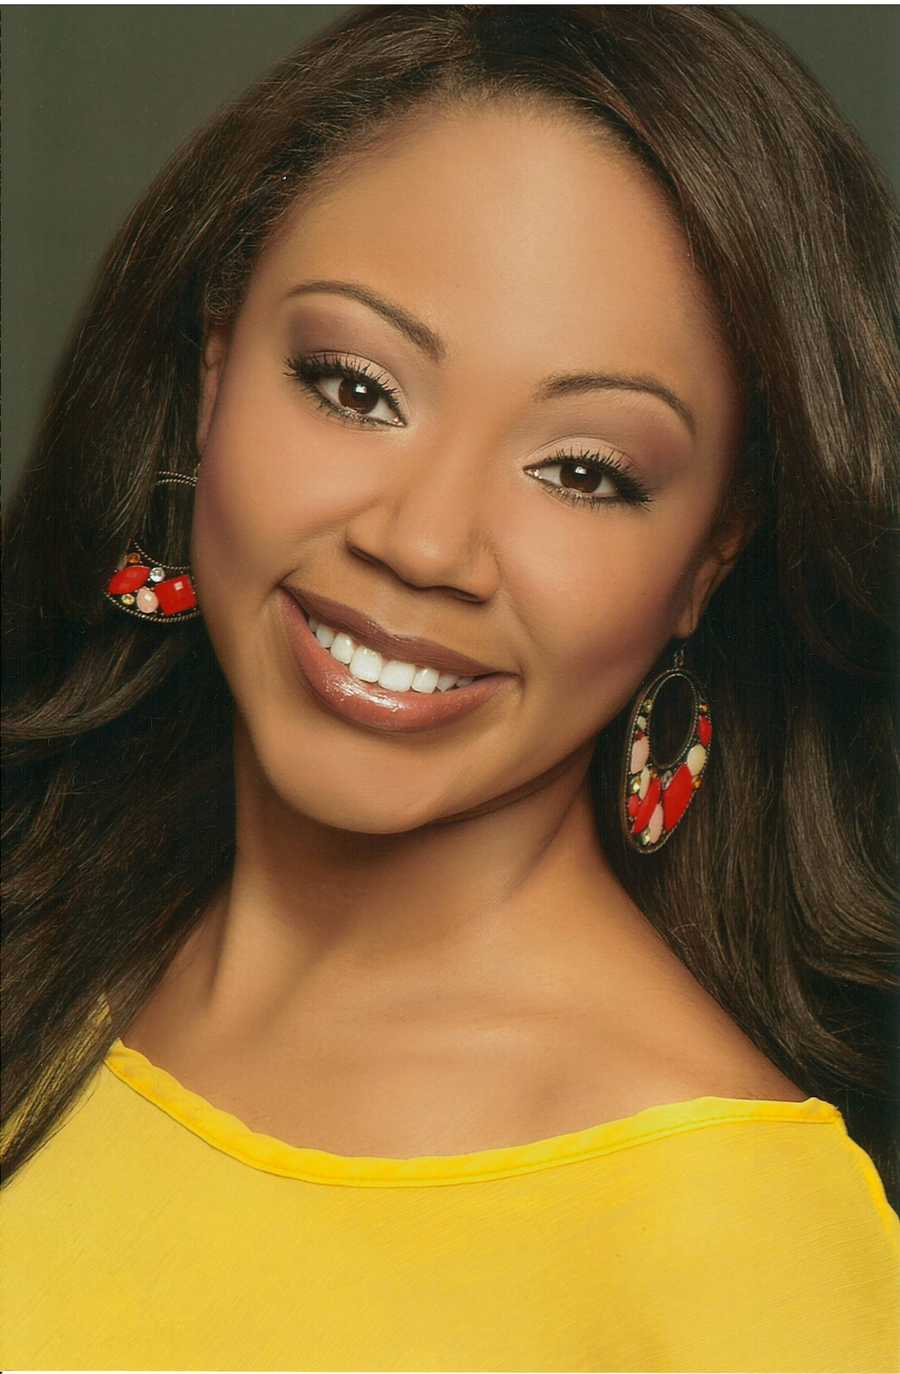 Elissa Taylor, 23, Miss University CityStopping a Silent Killer: Juvenile Diabetes Awareness and SupportVocal